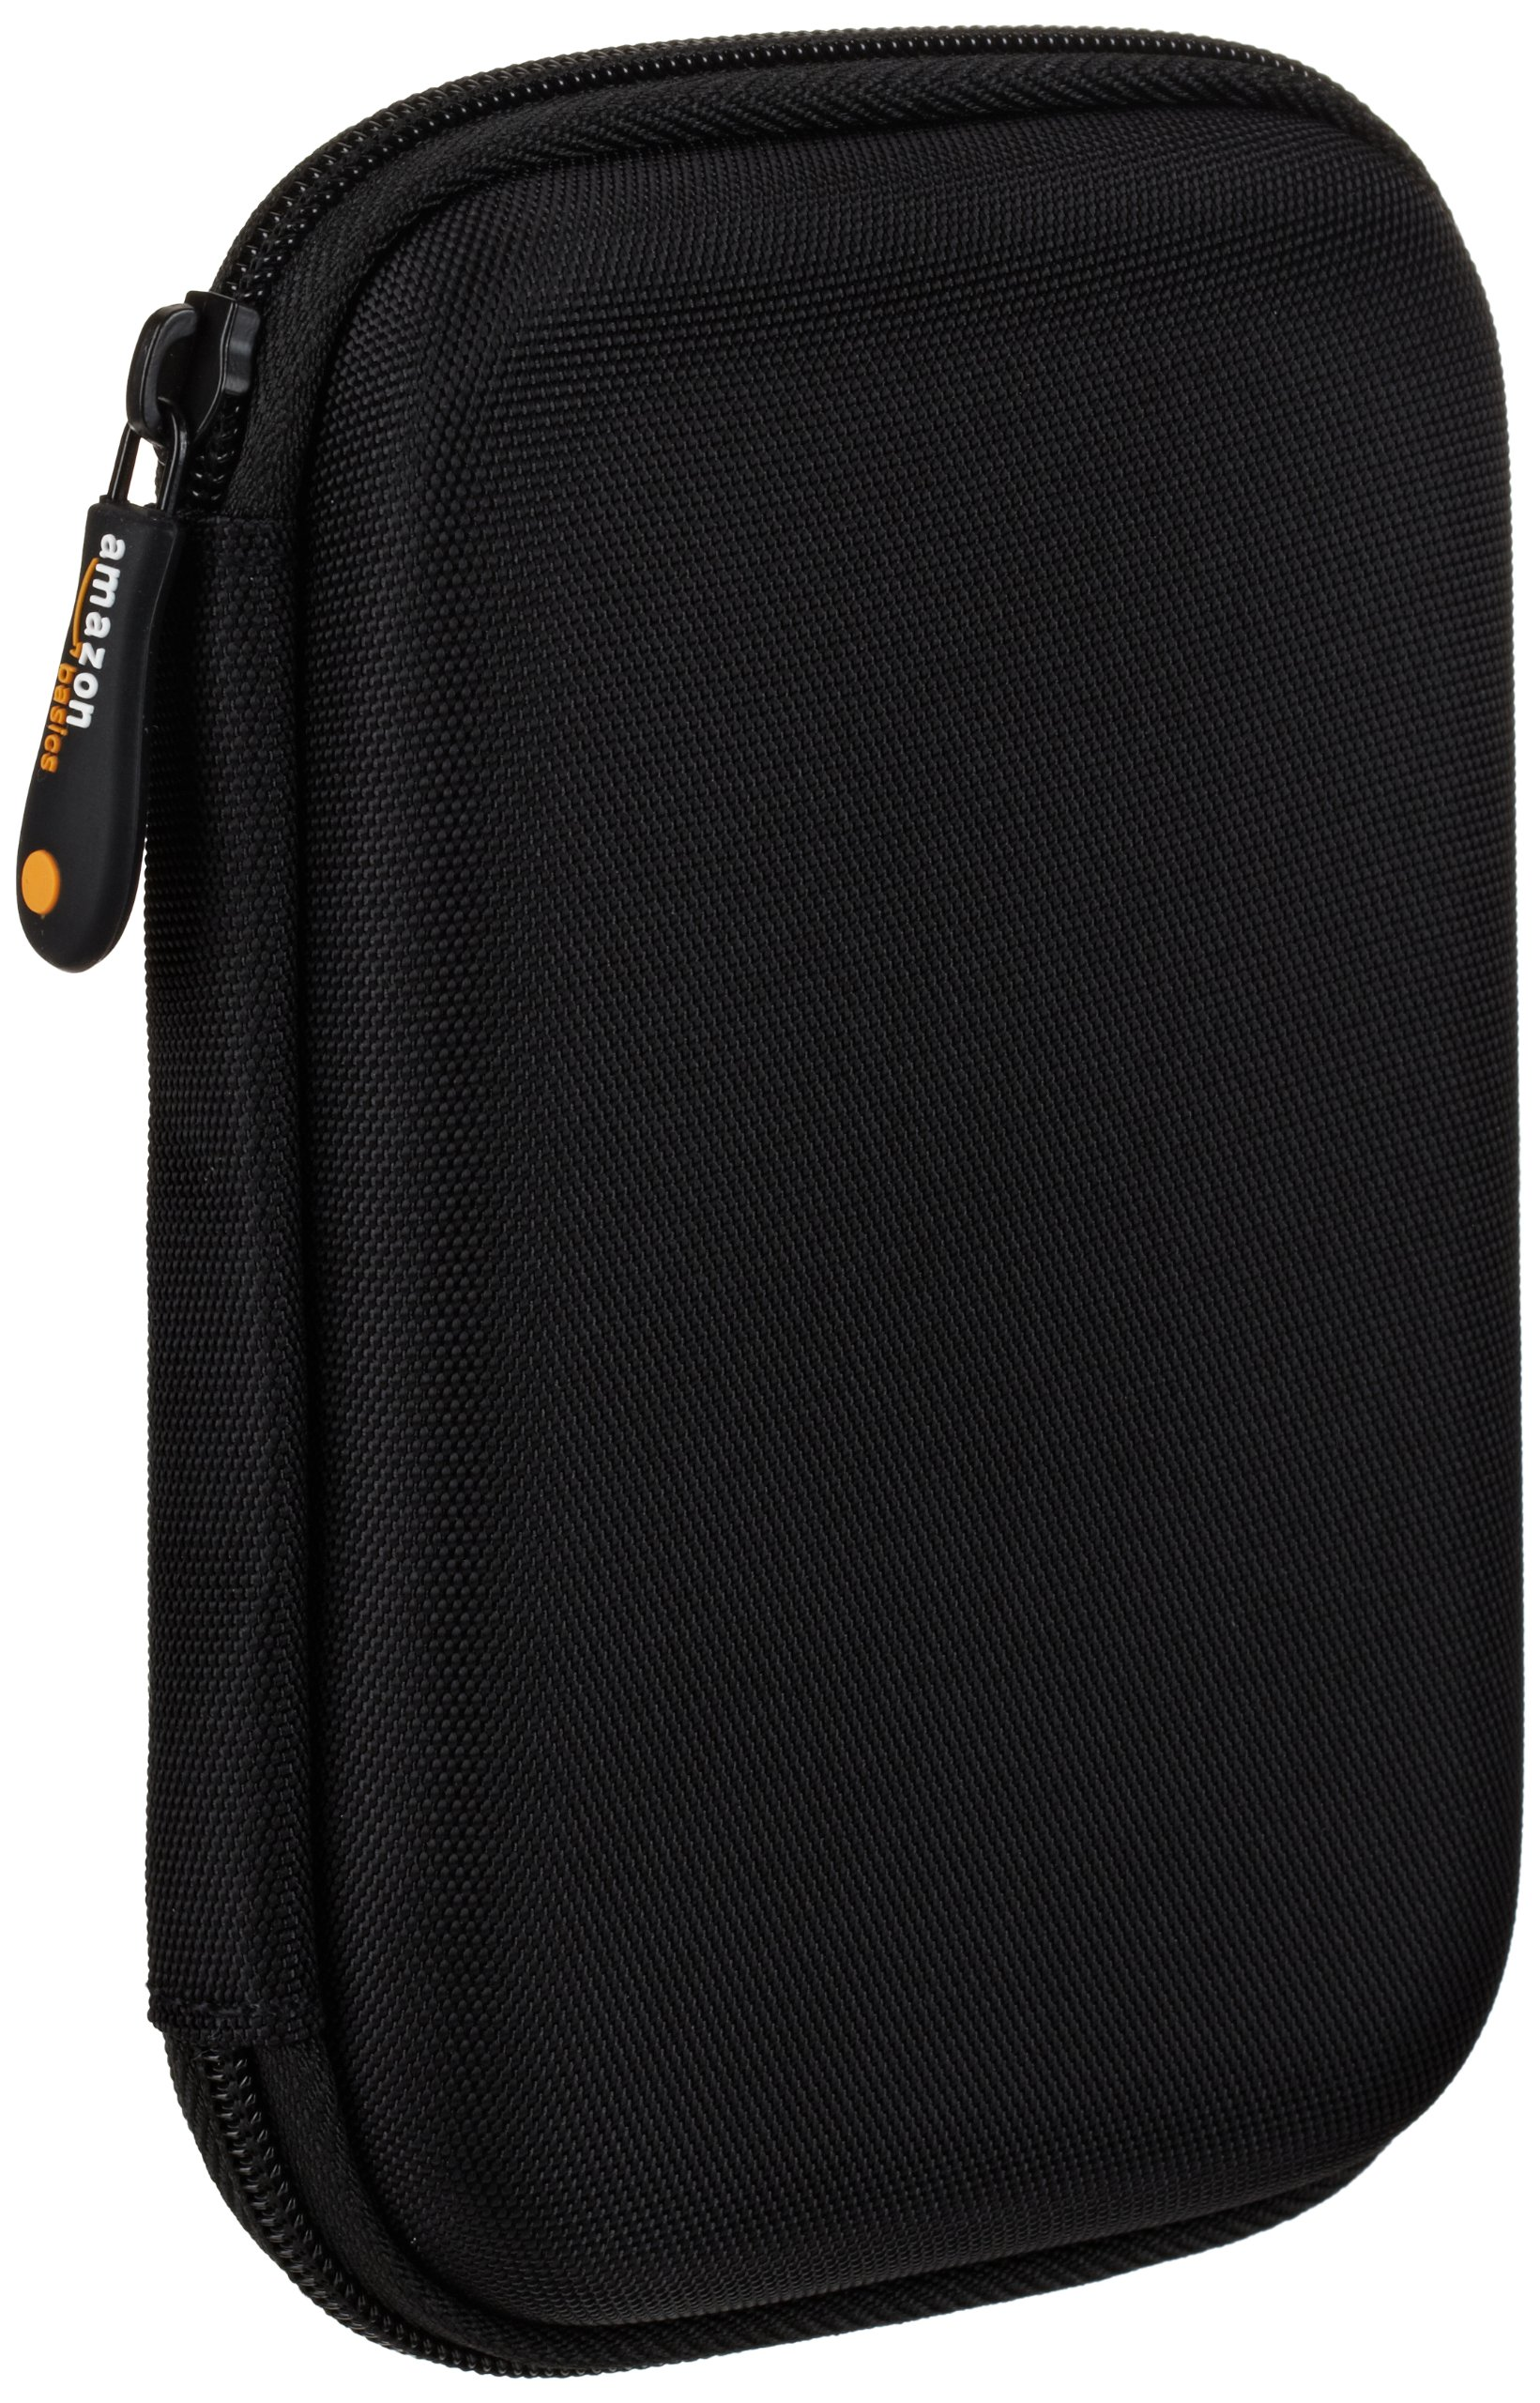 Amazon Basics External Hard Drive Portable Carrying Case